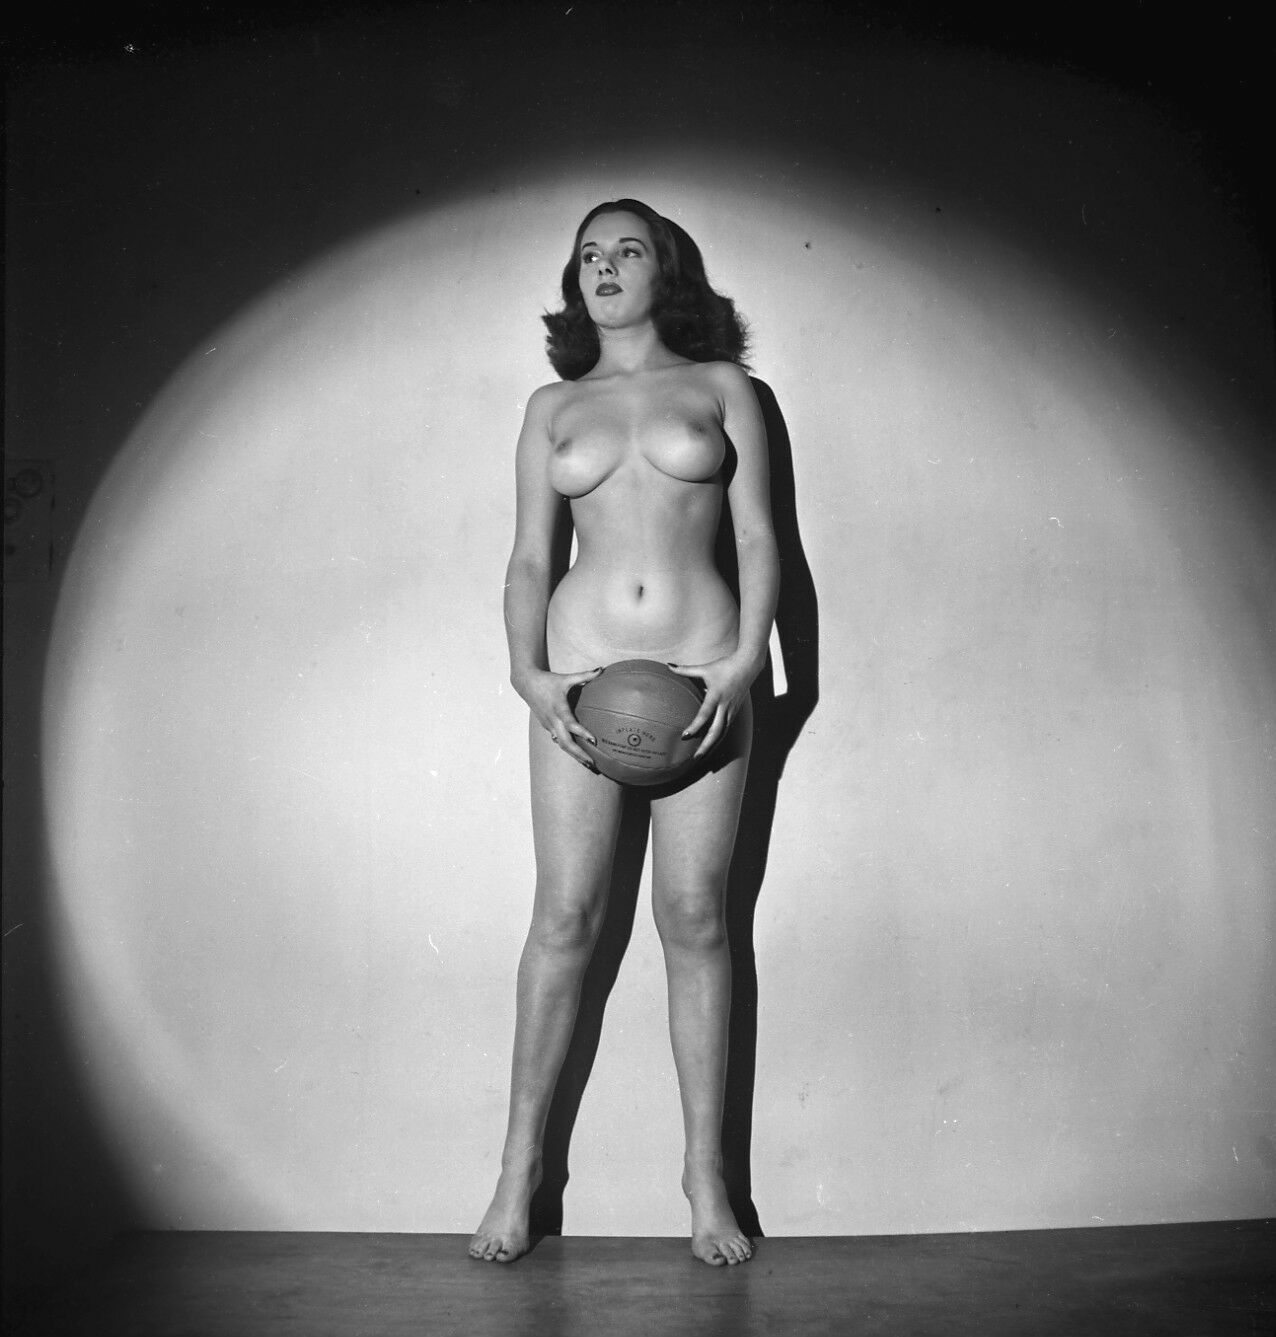 Vintage ODETTE Original B&W PIN-UP MODEL 120 Film Negative (NUDES)